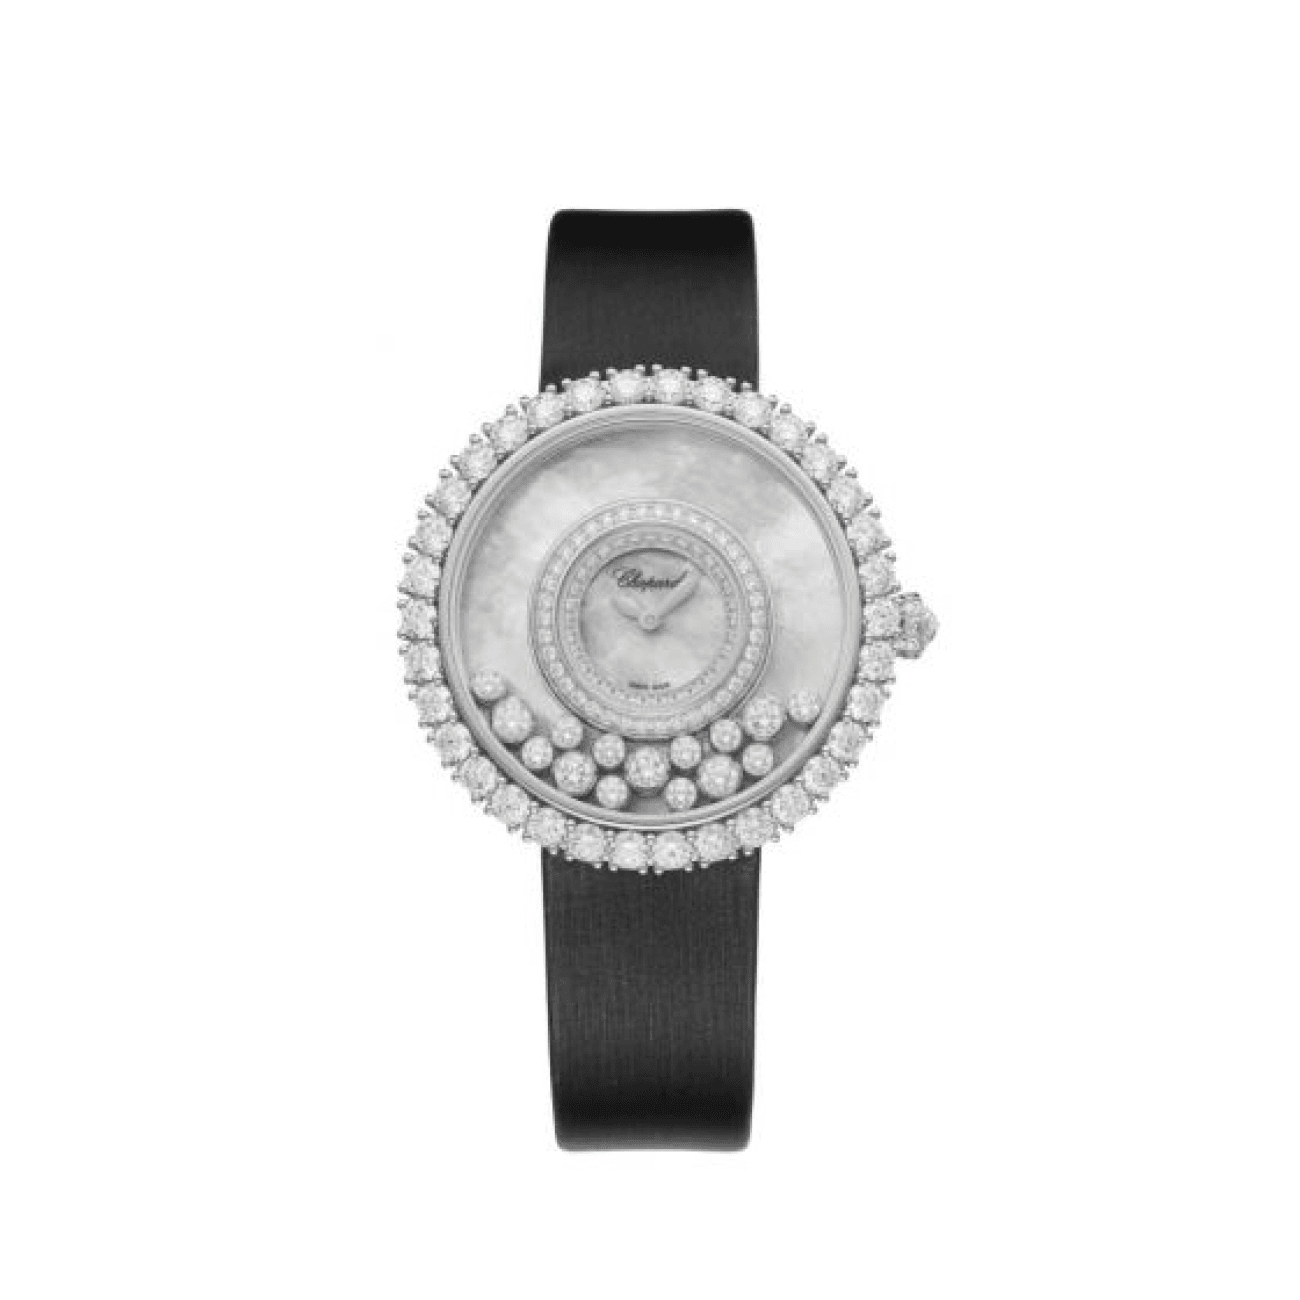 Chopard Watches - HAPPY DREAMS 36 MM | Manfredi Jewels